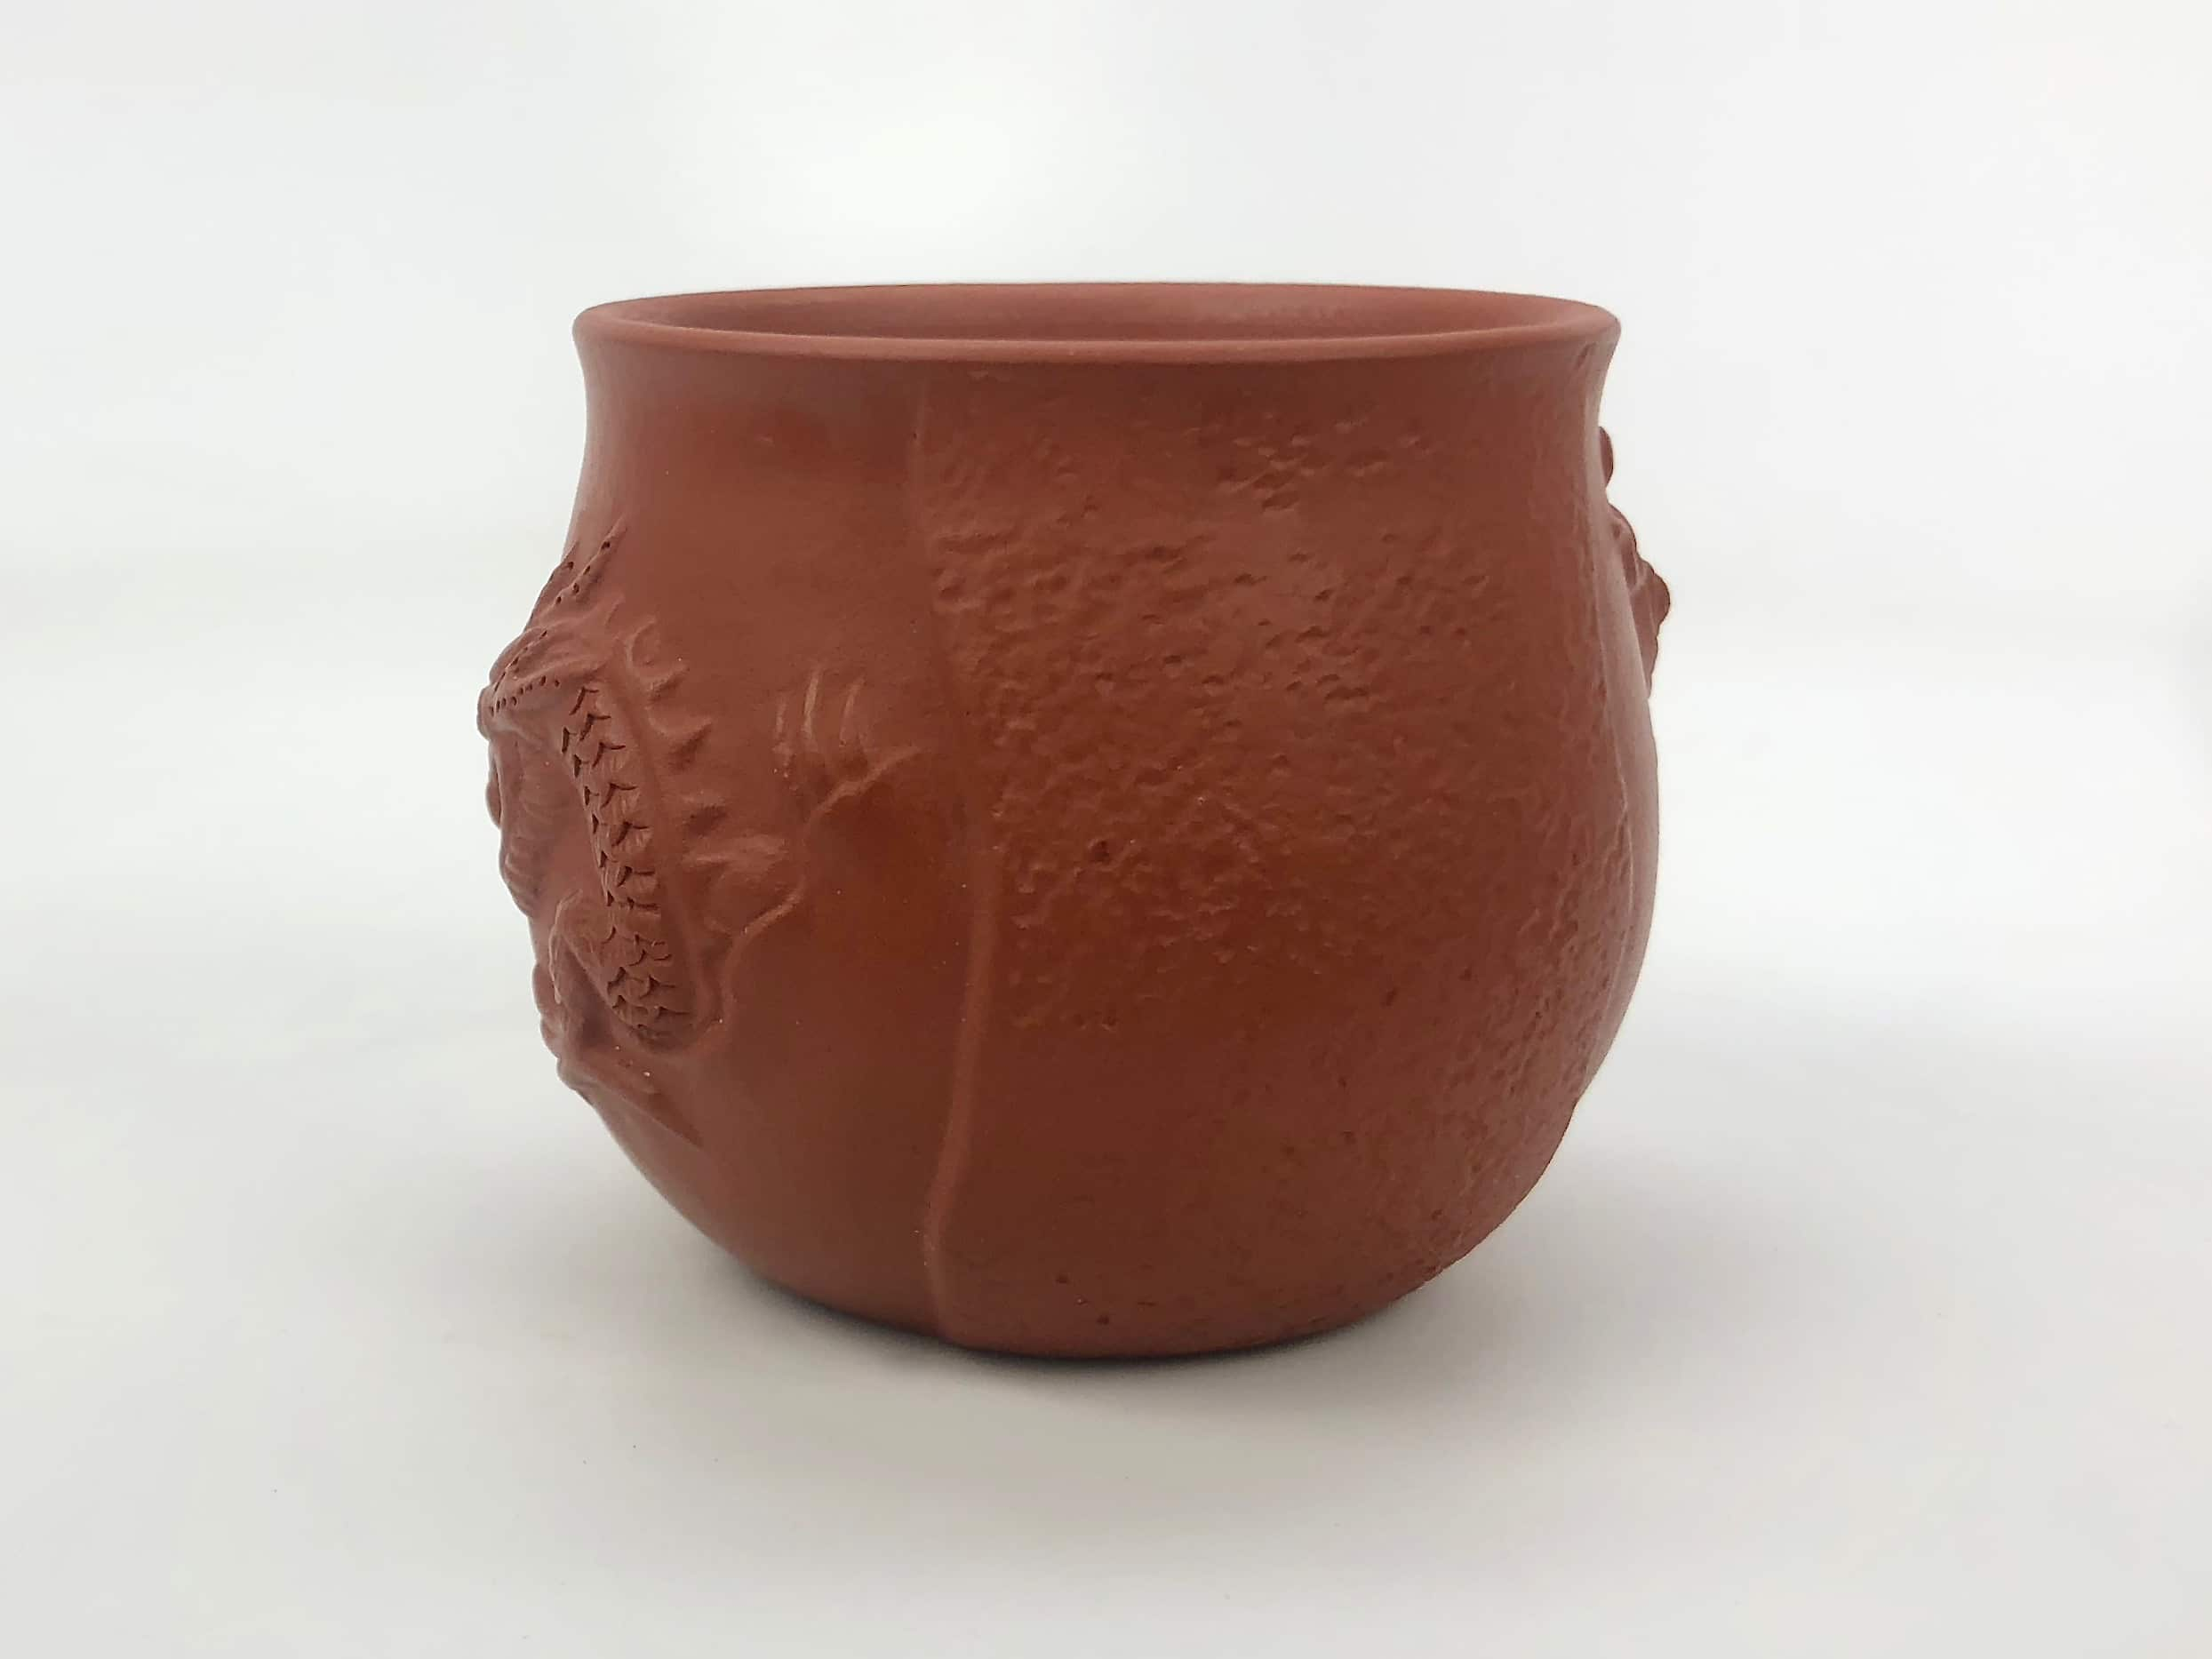 A rounded, slightly fluted dragon and fish red yixing clay cup. The raised cloud pattern in between the dragon and fish is slightly textured.